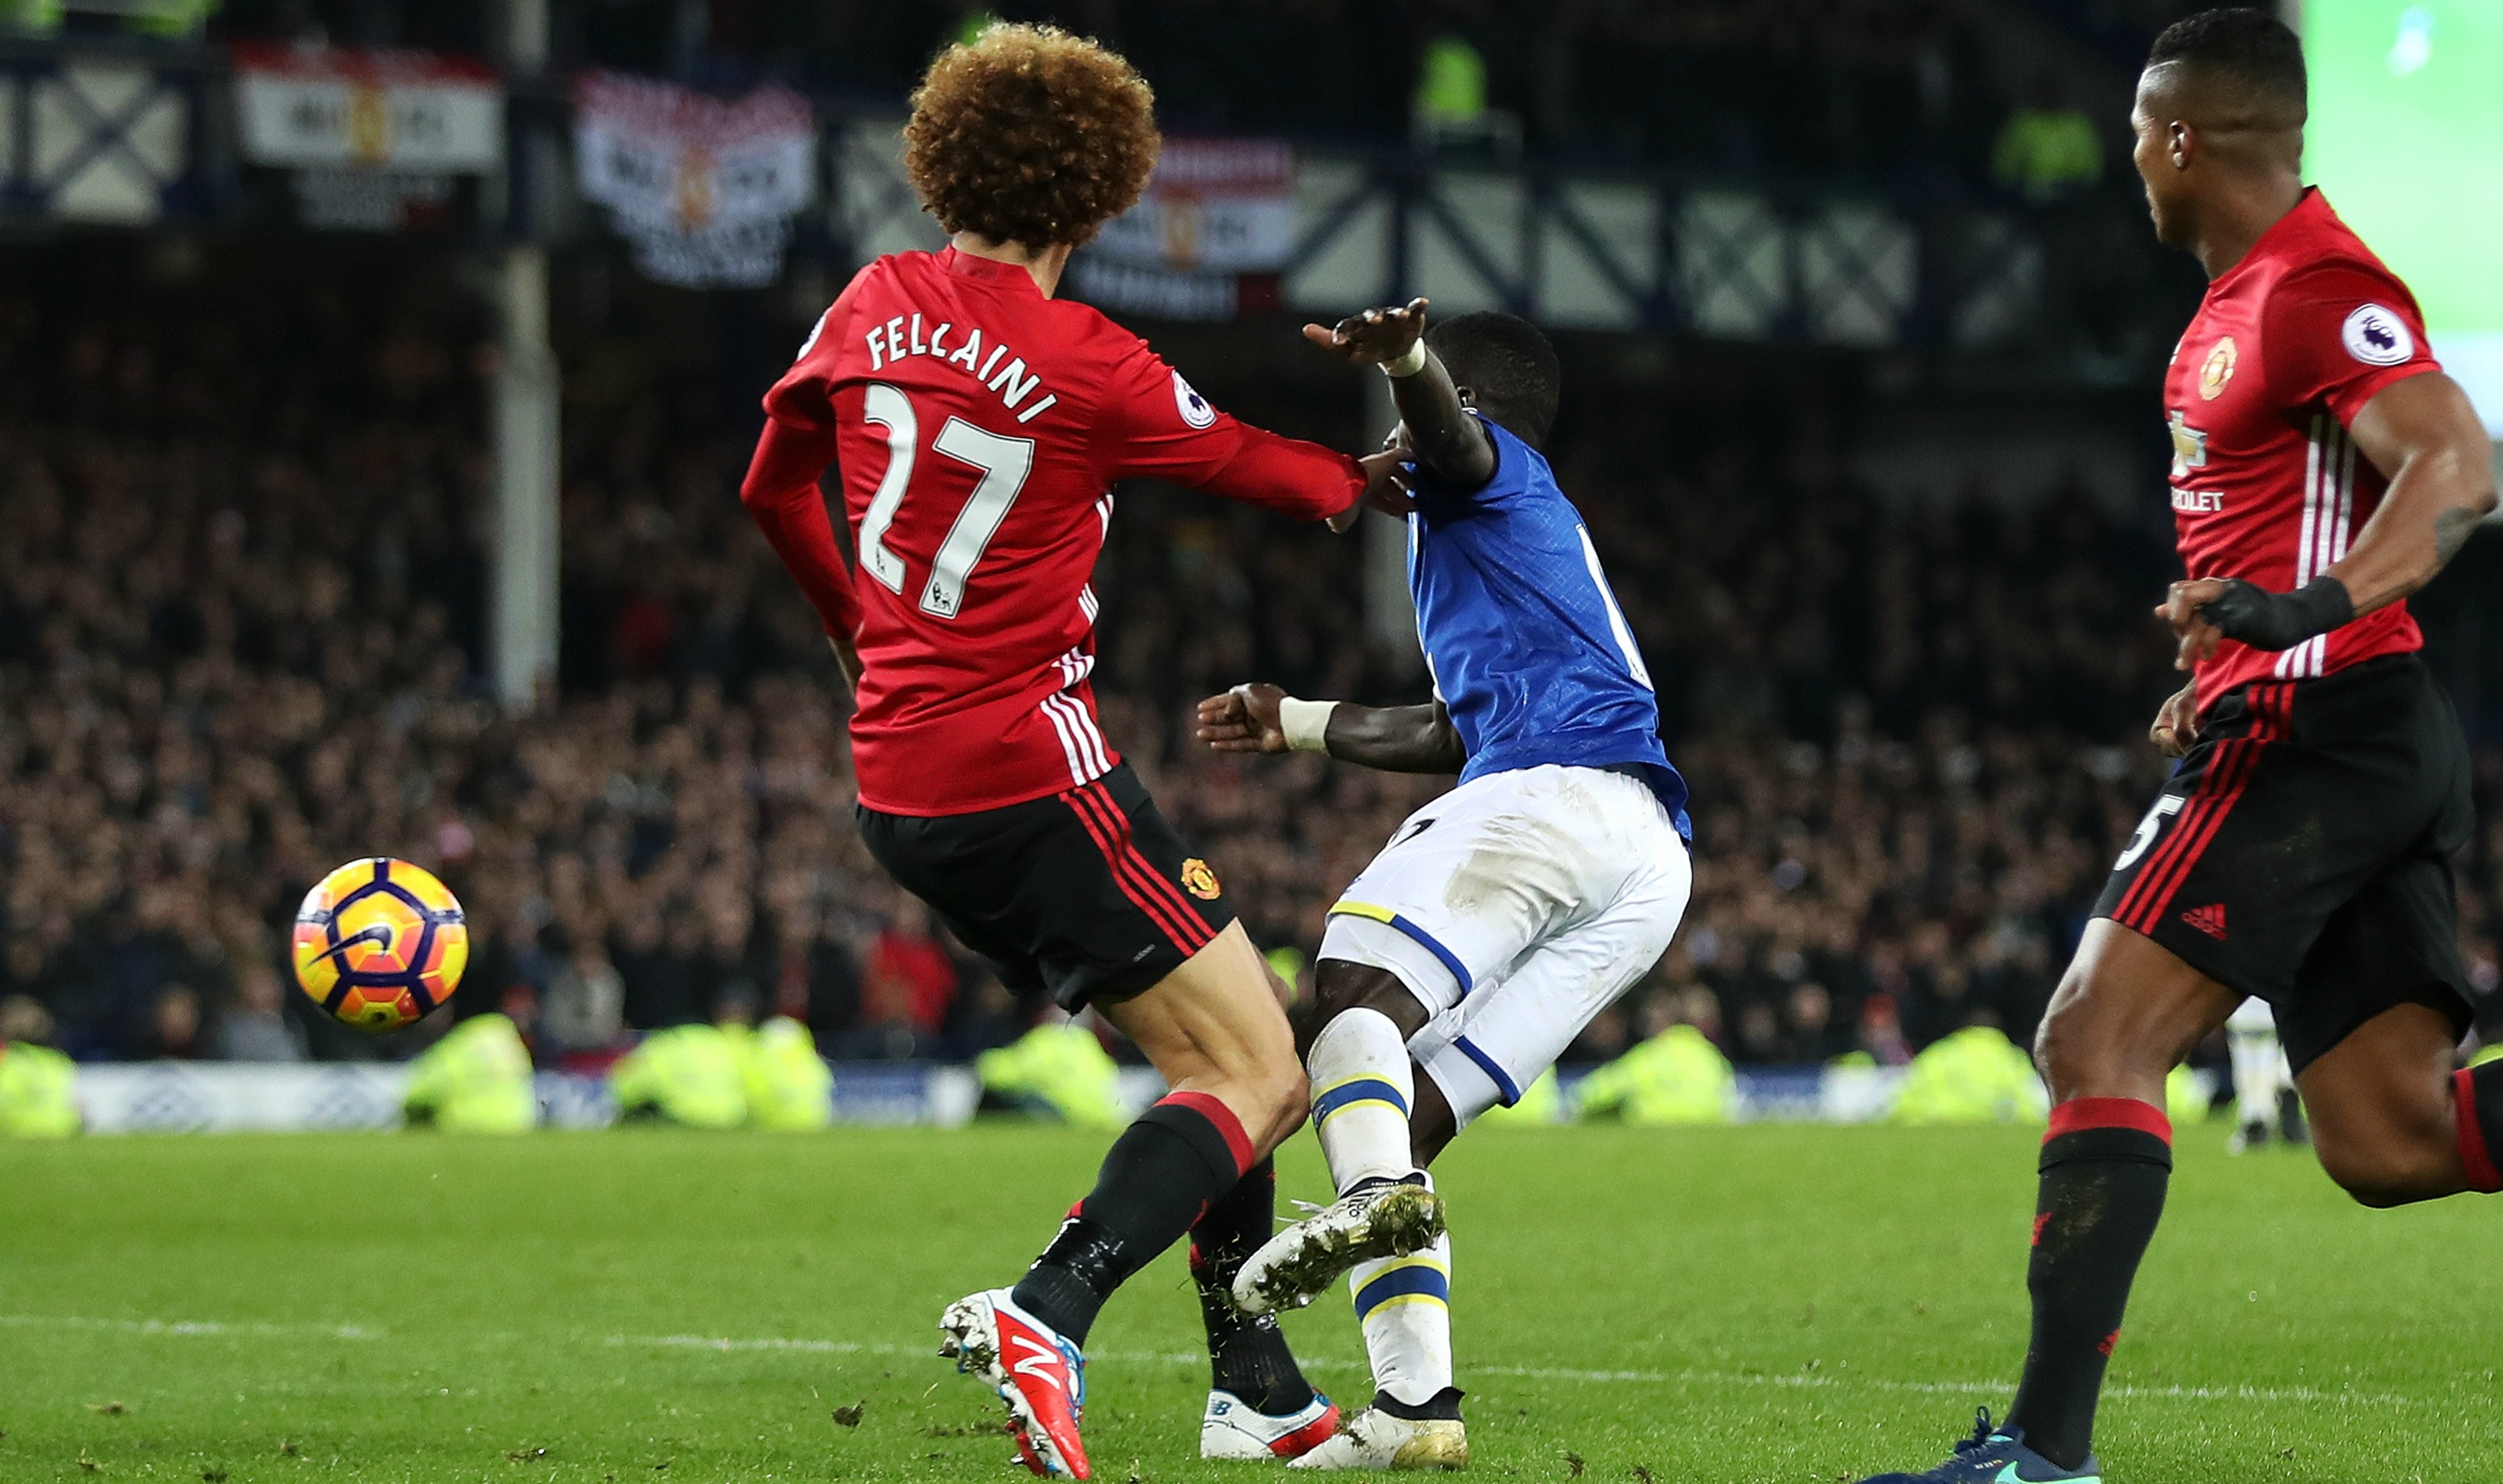 Marouane Fellaini's 100th game perfectly summed up his Manchester United stint